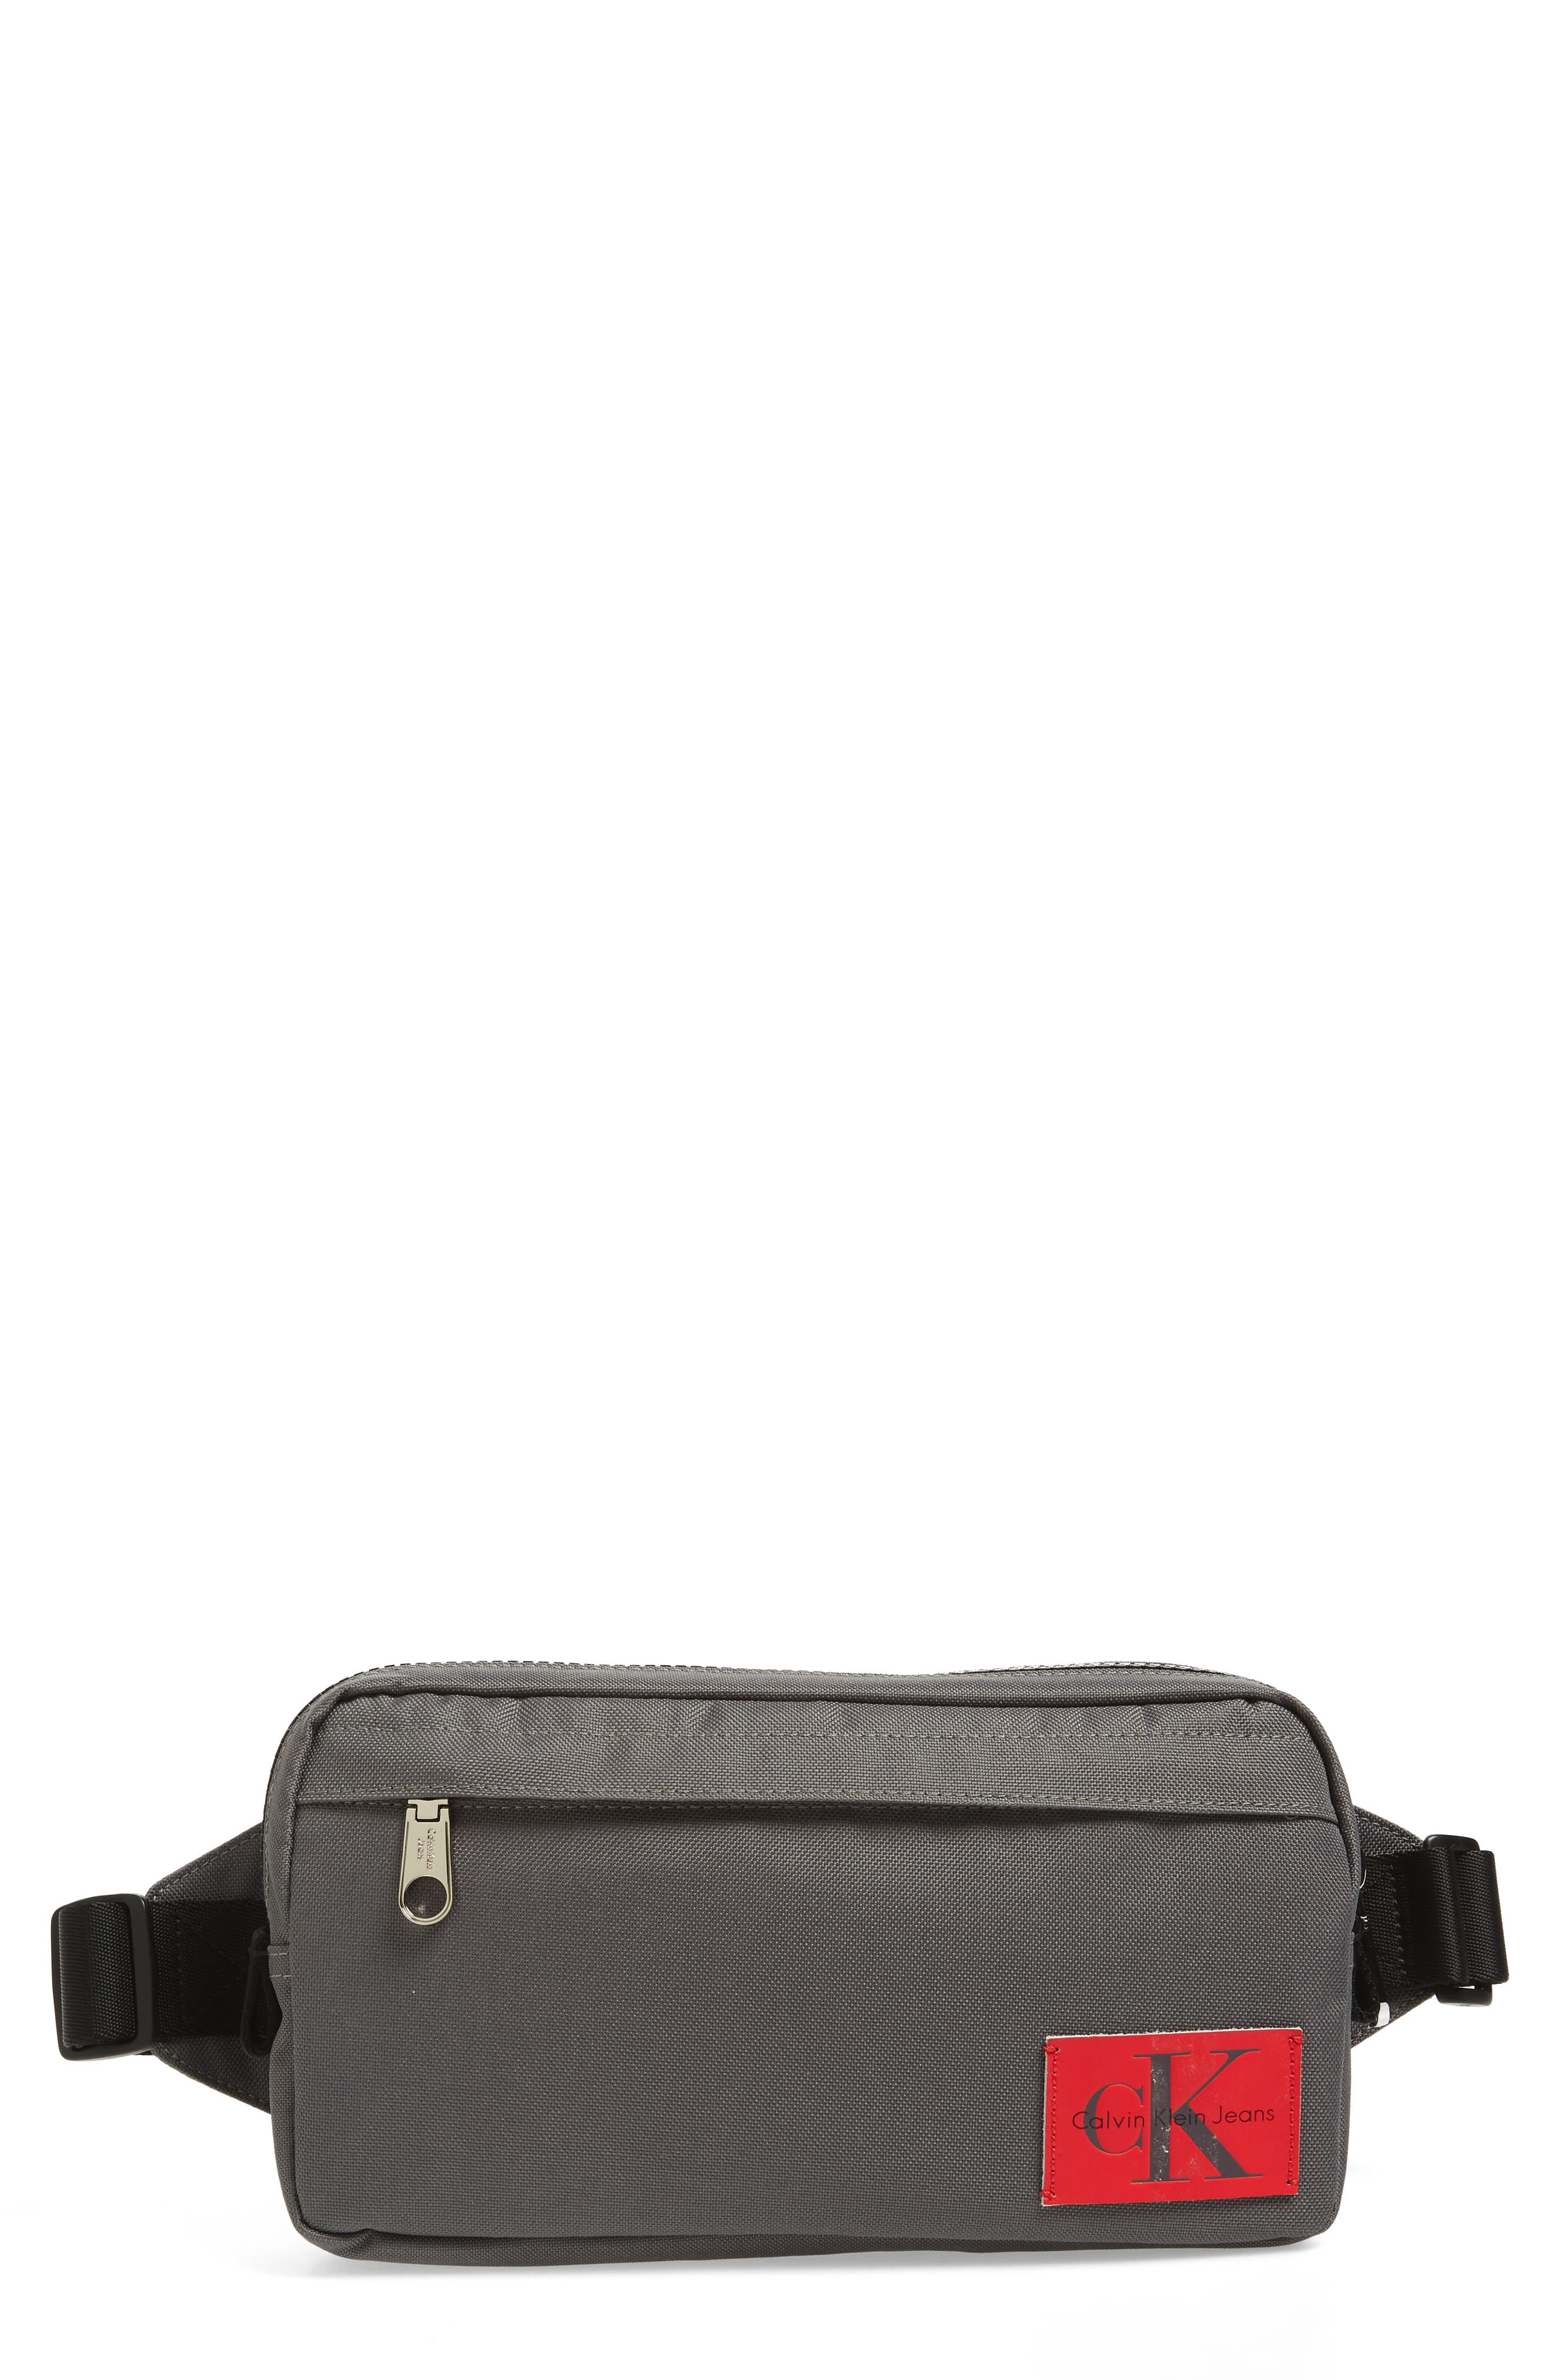 CONVERTIBLE FANNY PACK - GREY